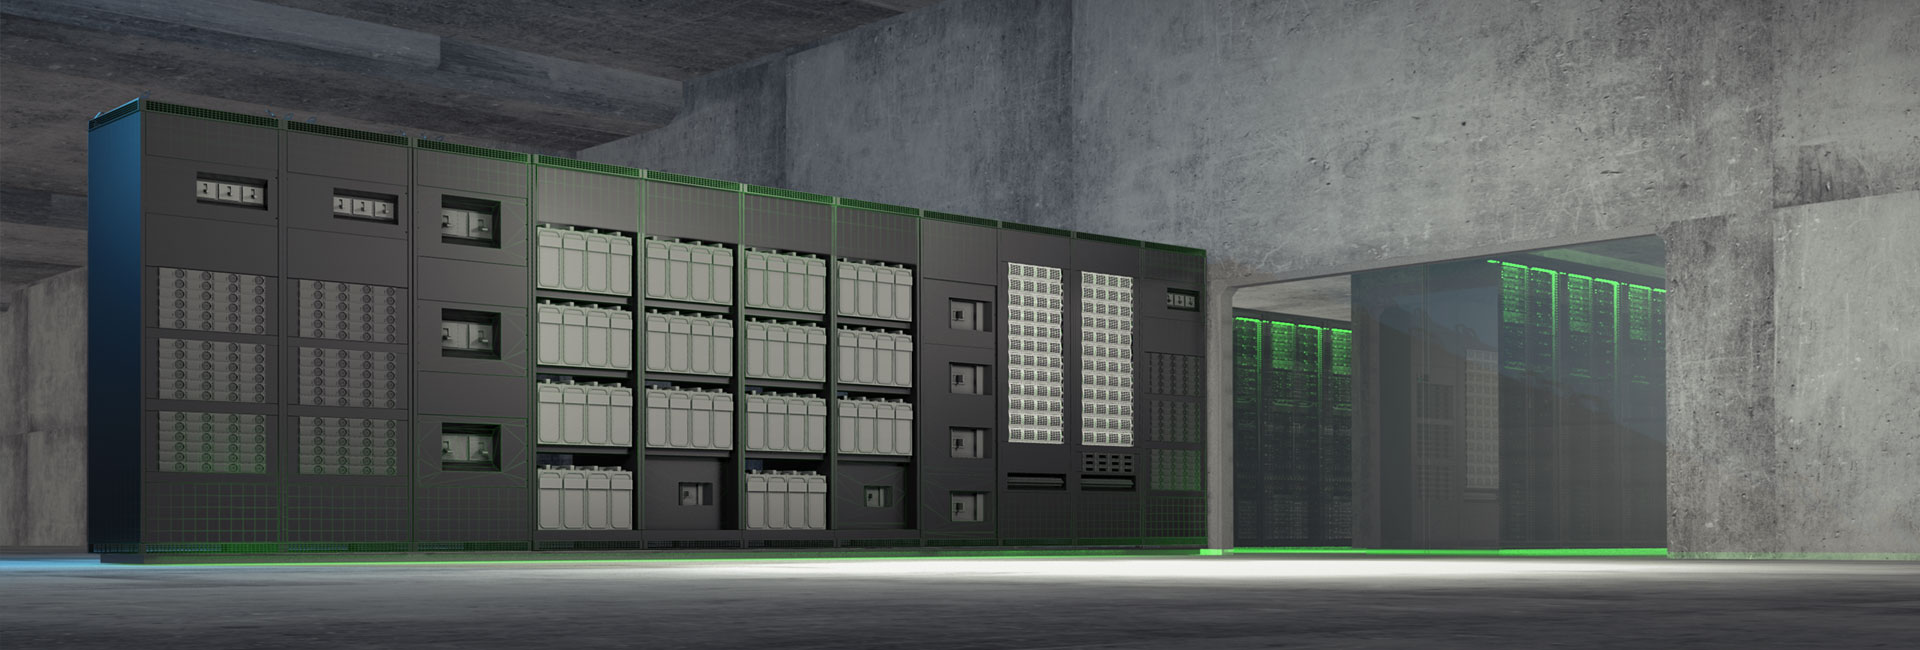 Modular power solutions provide unprecedented power availability